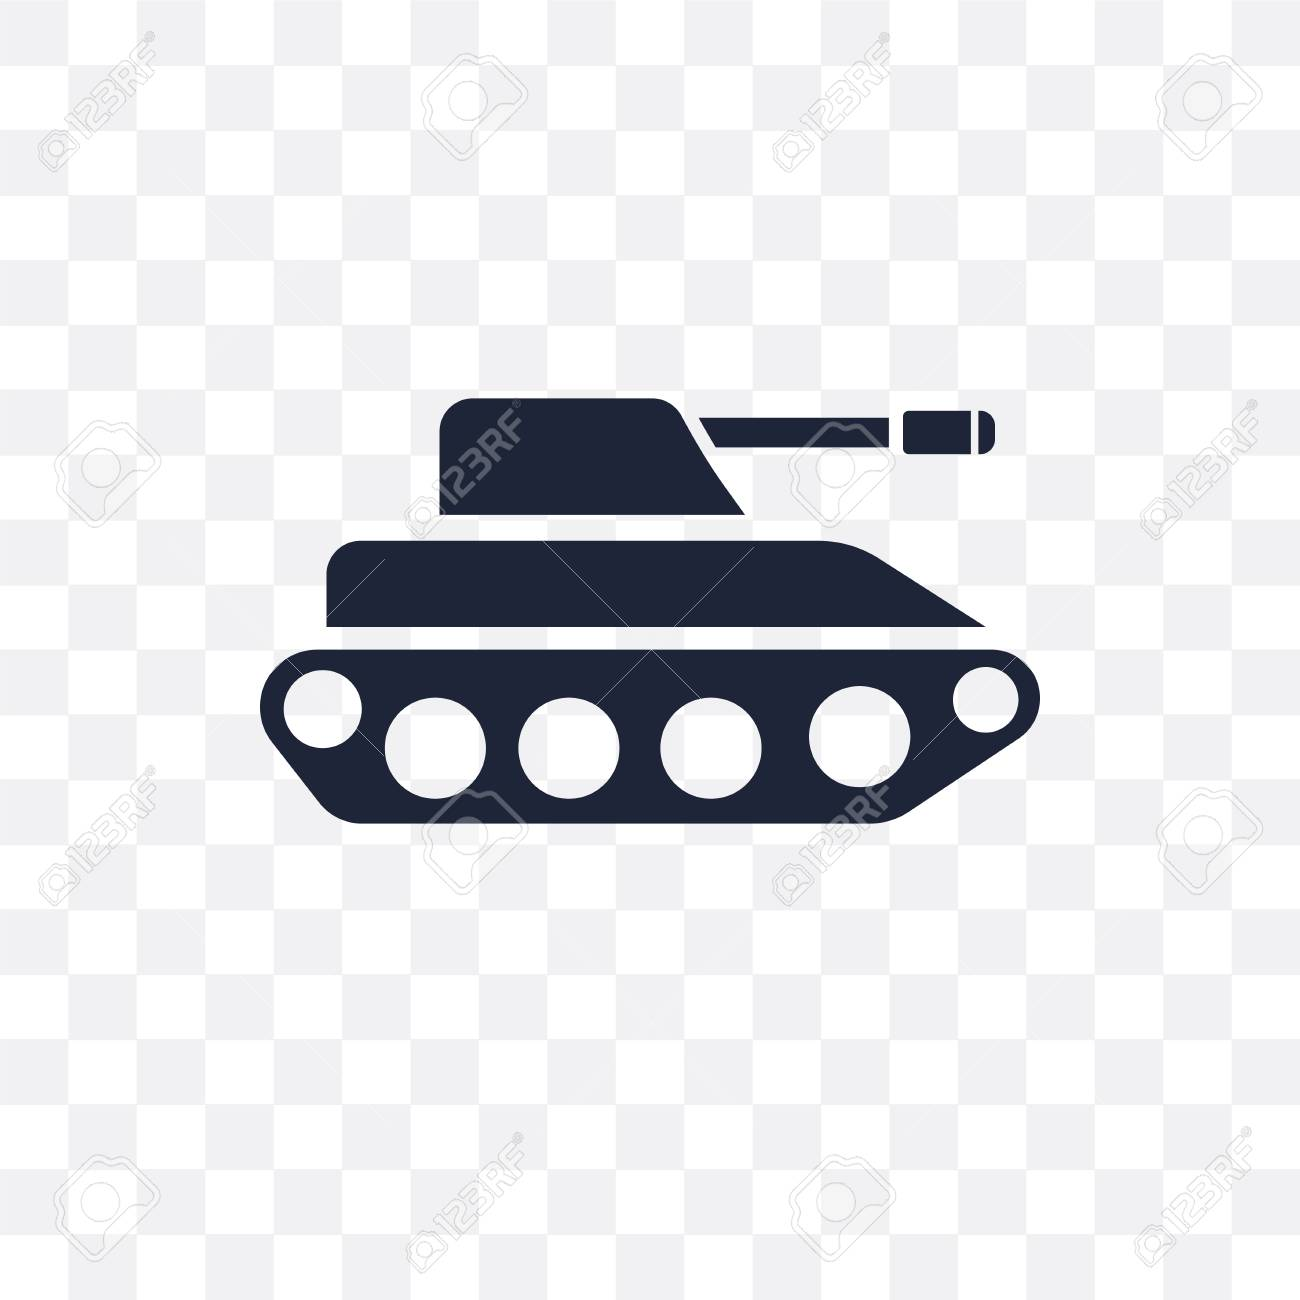 22+ Tank Icon Transparent